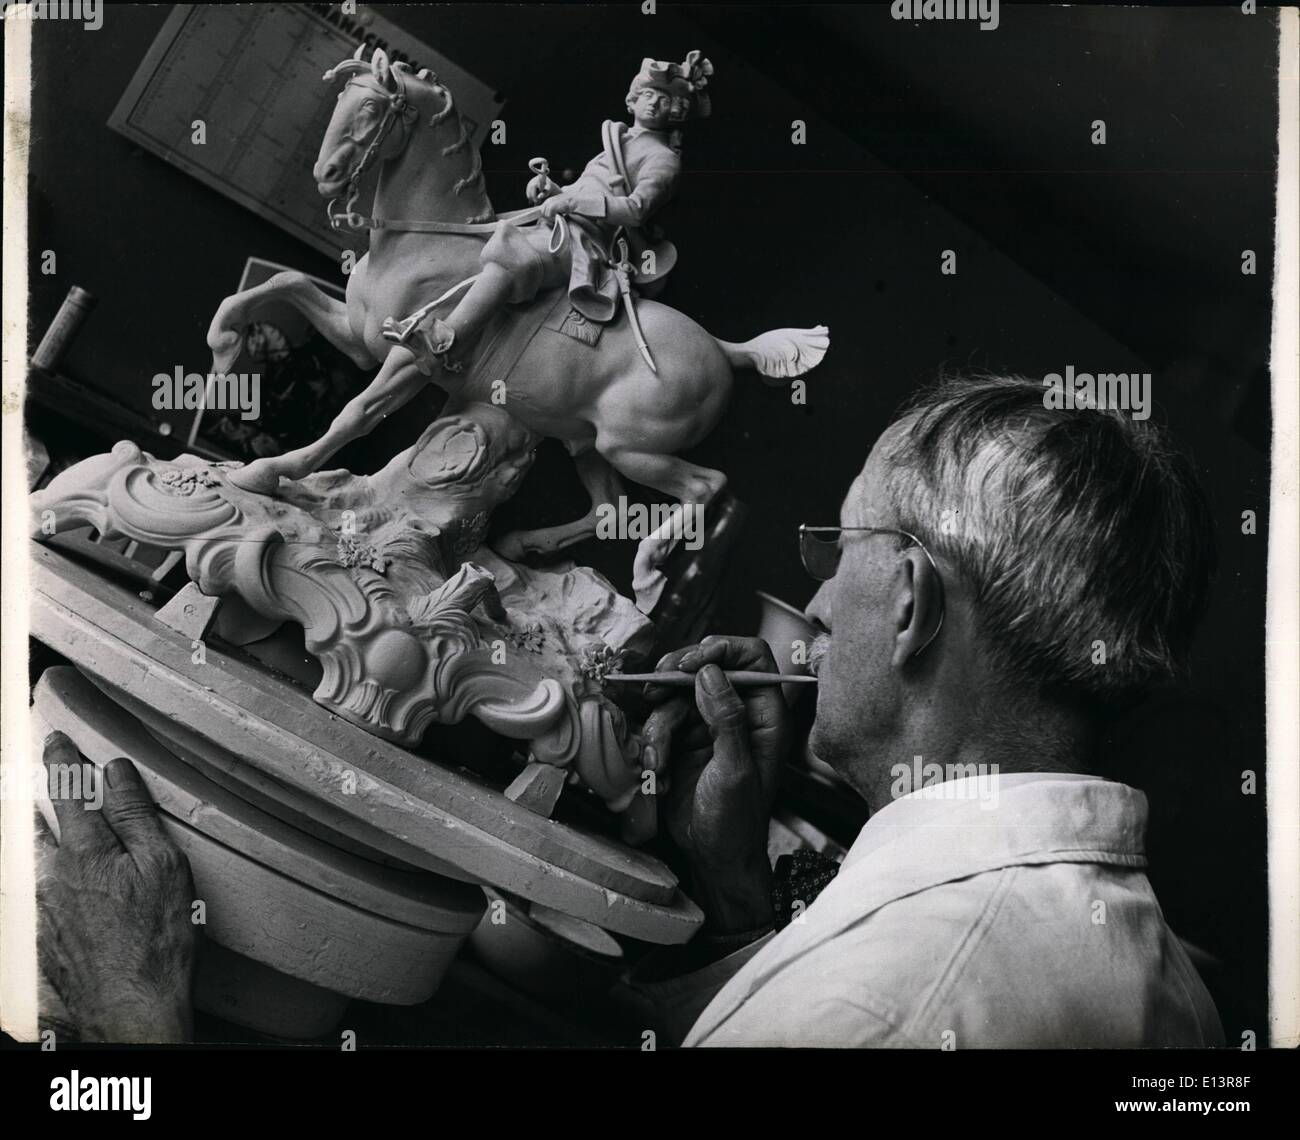 Mar. 27, 2012 - Dainty Dresden China from Russian Zone. Otto Zolliner, aged 61, craftsman at the factory for 36 years, working on the exquisite figure of a mounted cavalier. - Stock Image